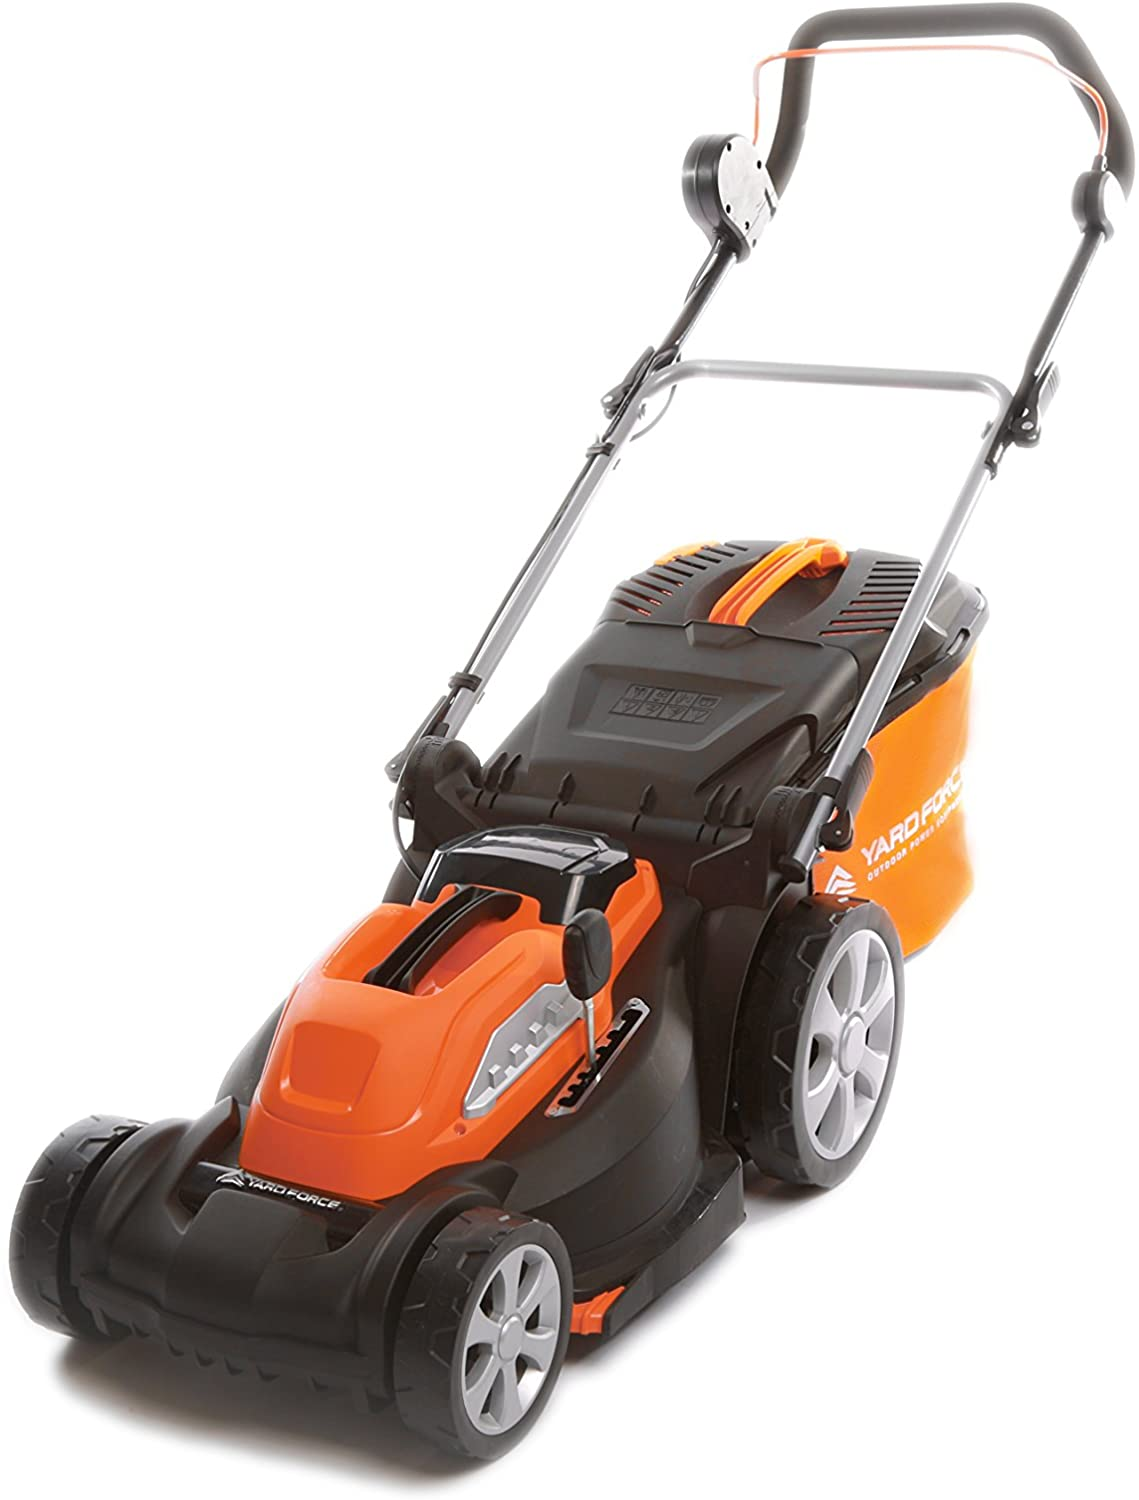 Yard Force 40V 37cm Cordless Lawnmower with 2.5AH Lithium-ion Battery and Quick Charger (with rear roller) LM G37/25